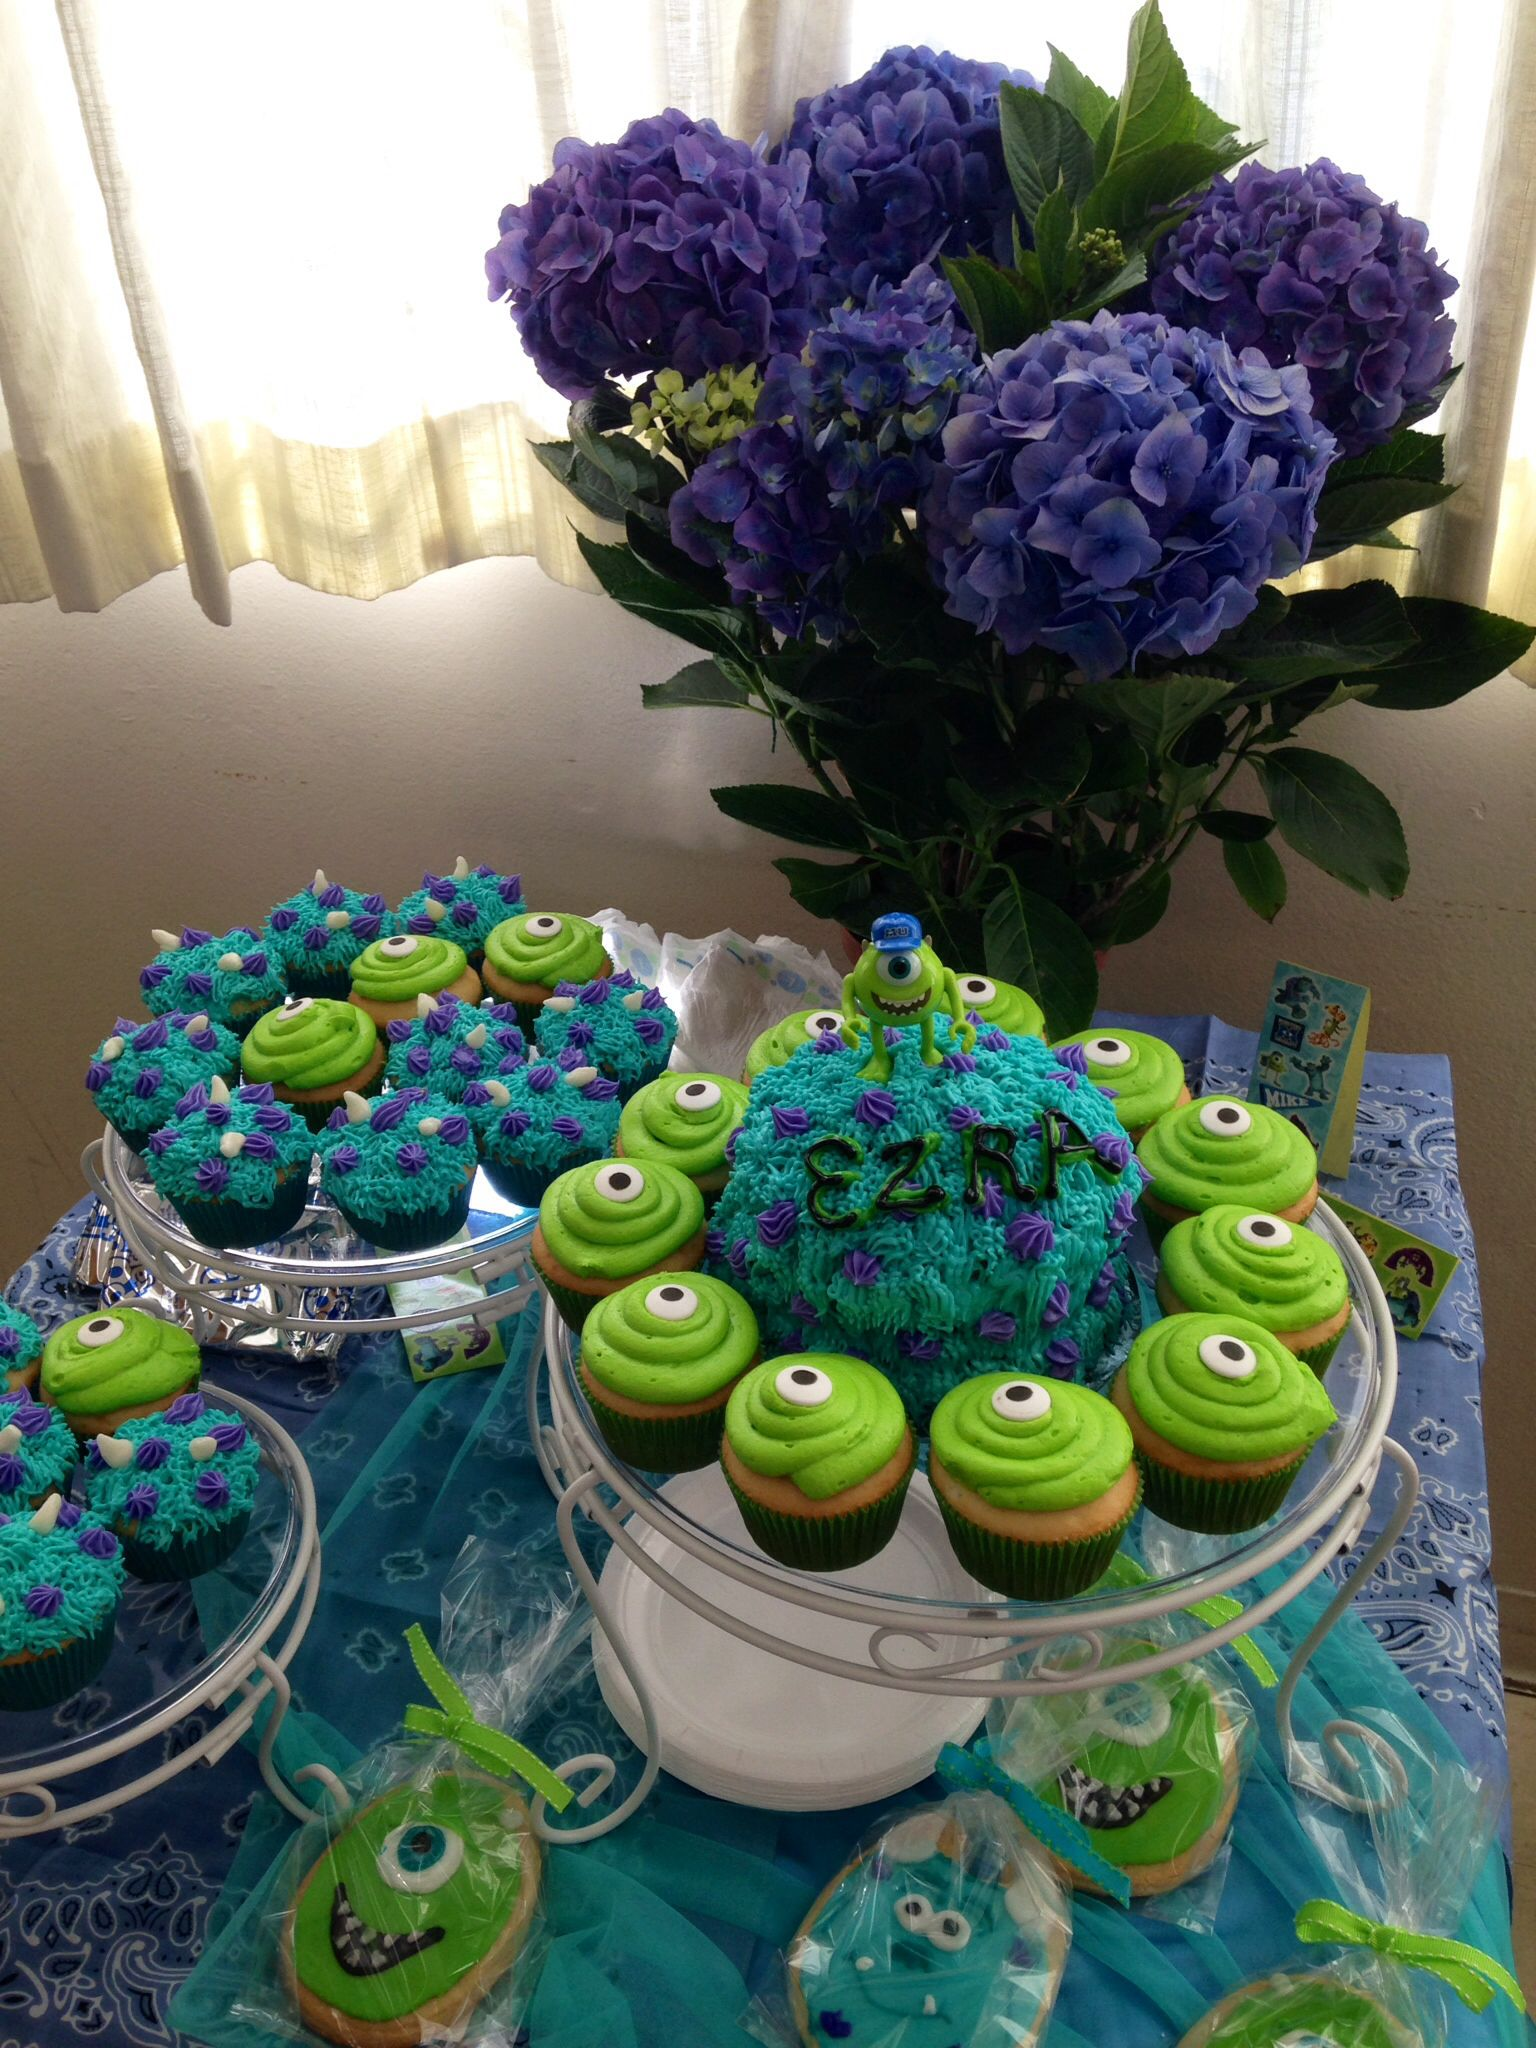 It was a Monster Inc sugar dream come alive! The adorable cake, cupcakes and cookies were so delicious! Taste of a Love Cakes in California... YOU ROCK!